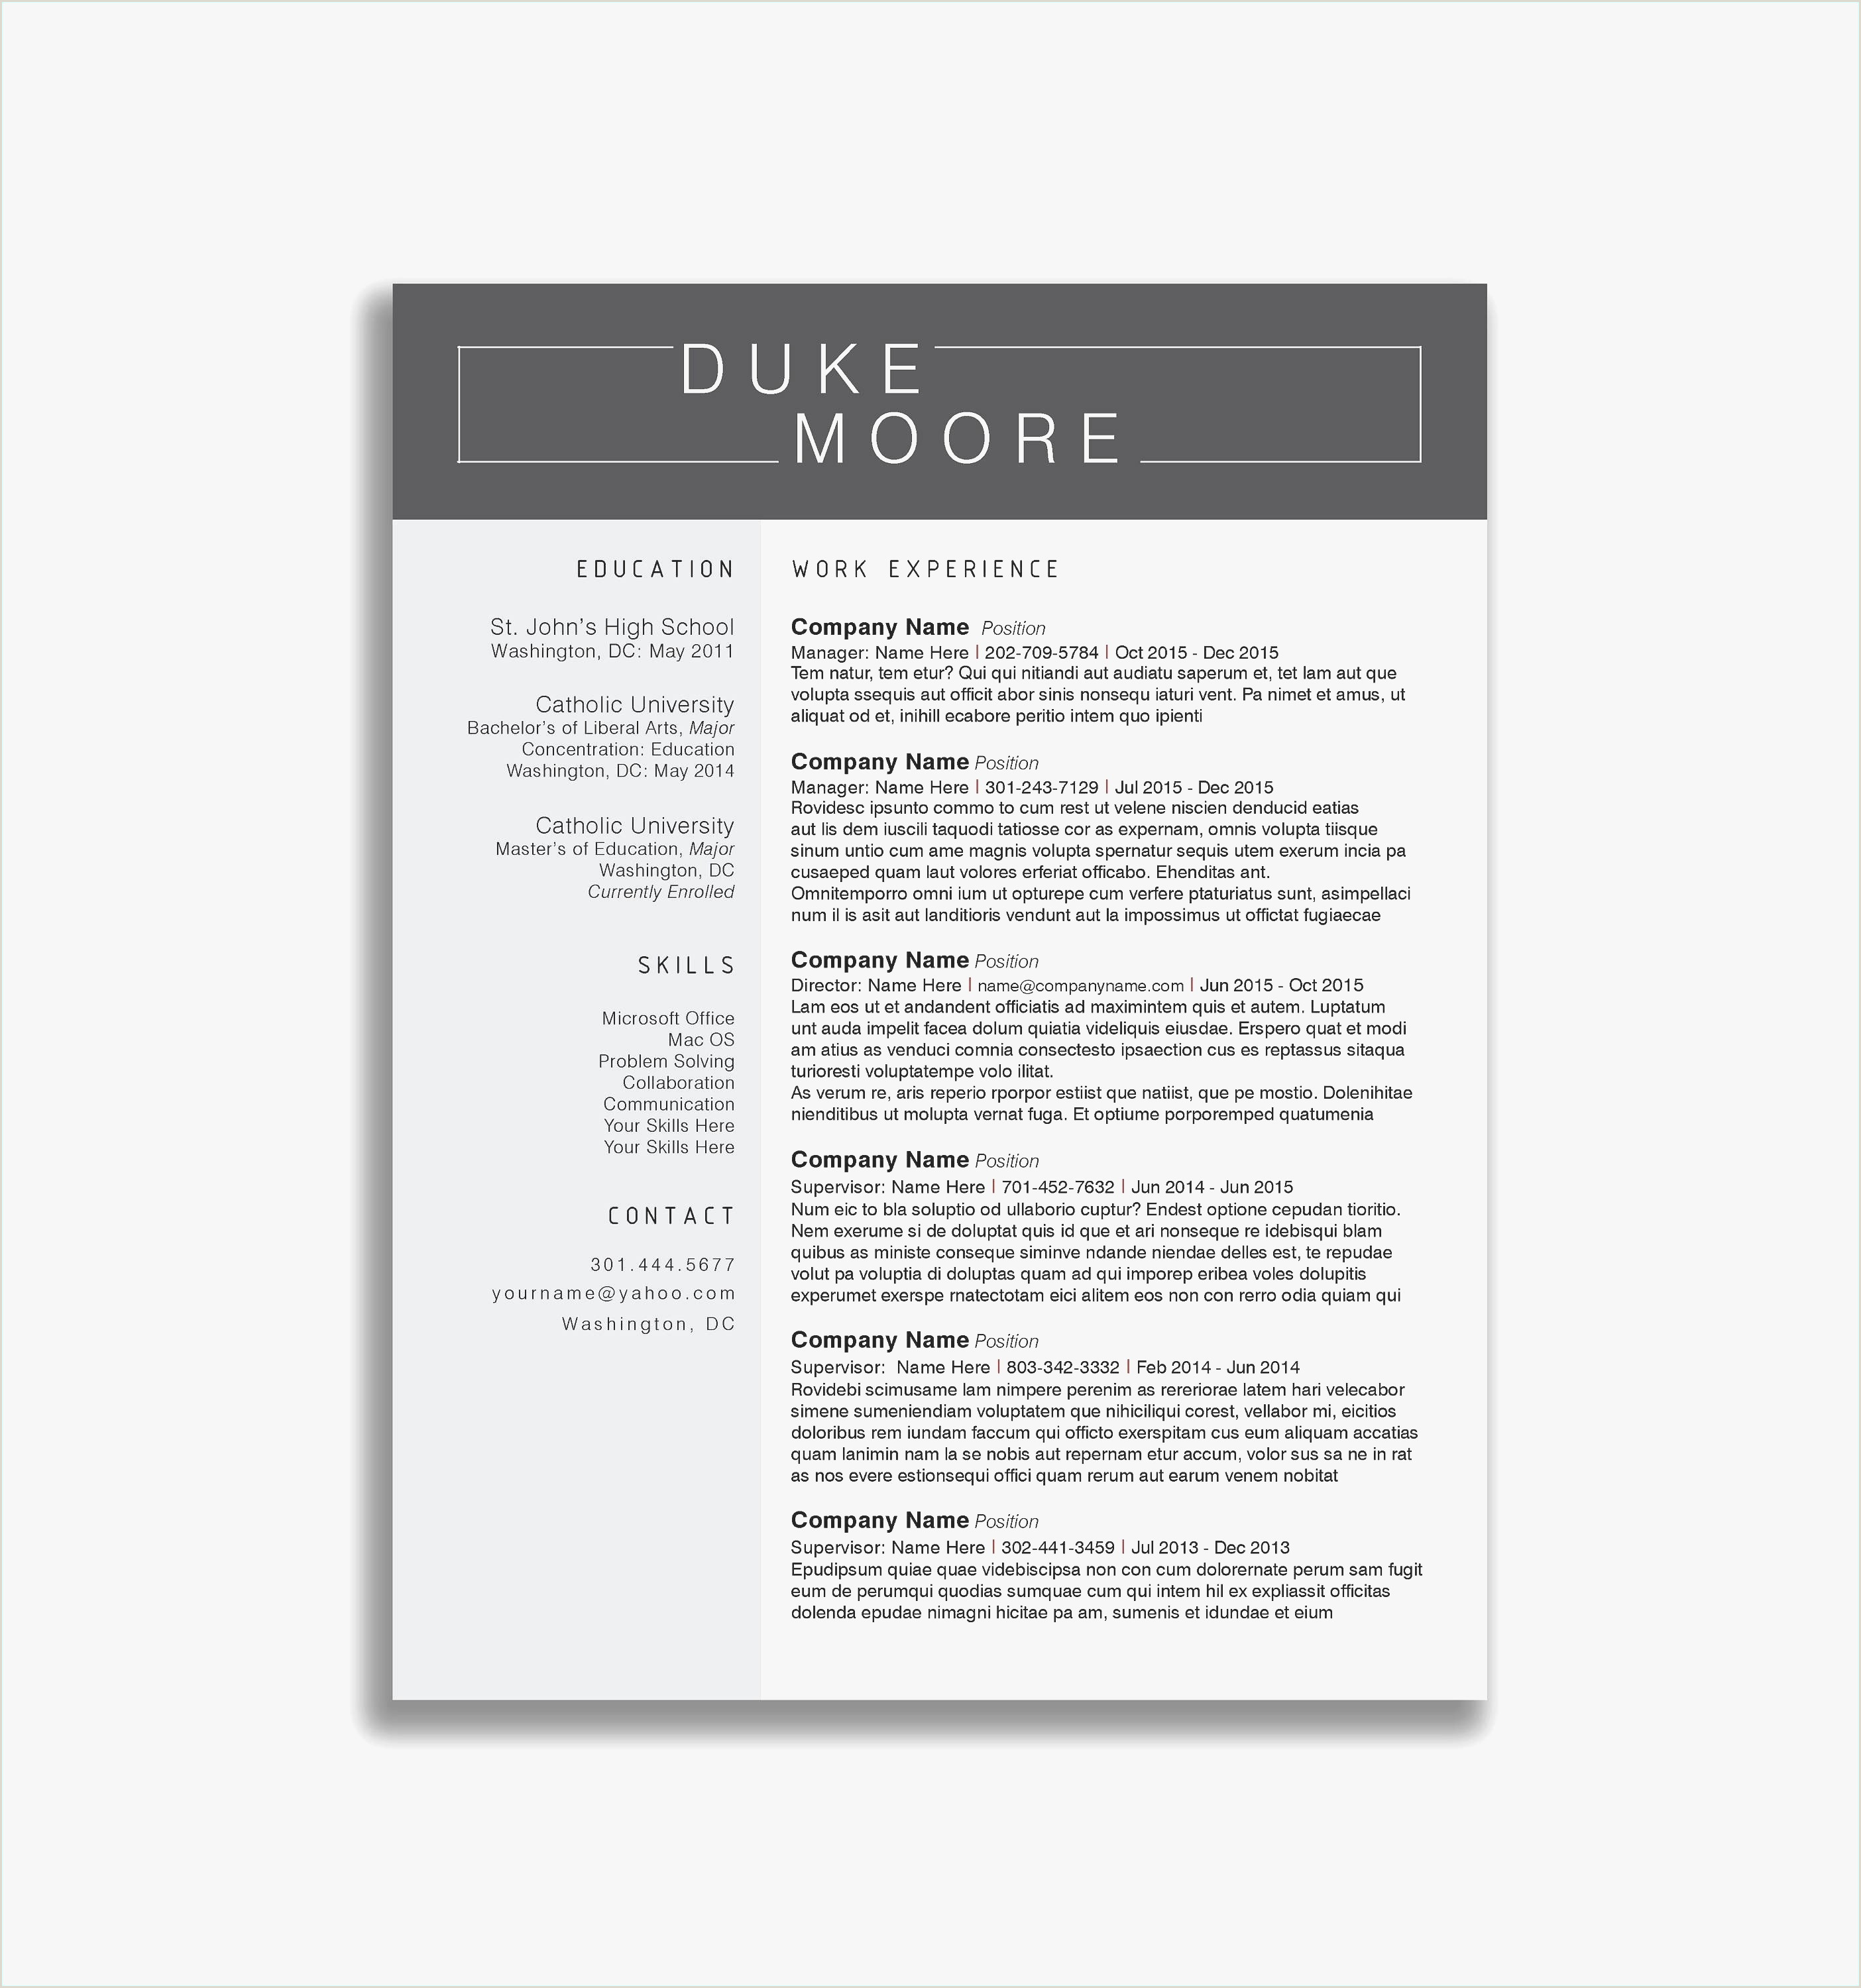 Resume Samples for Freshers Free Objective for Resume for